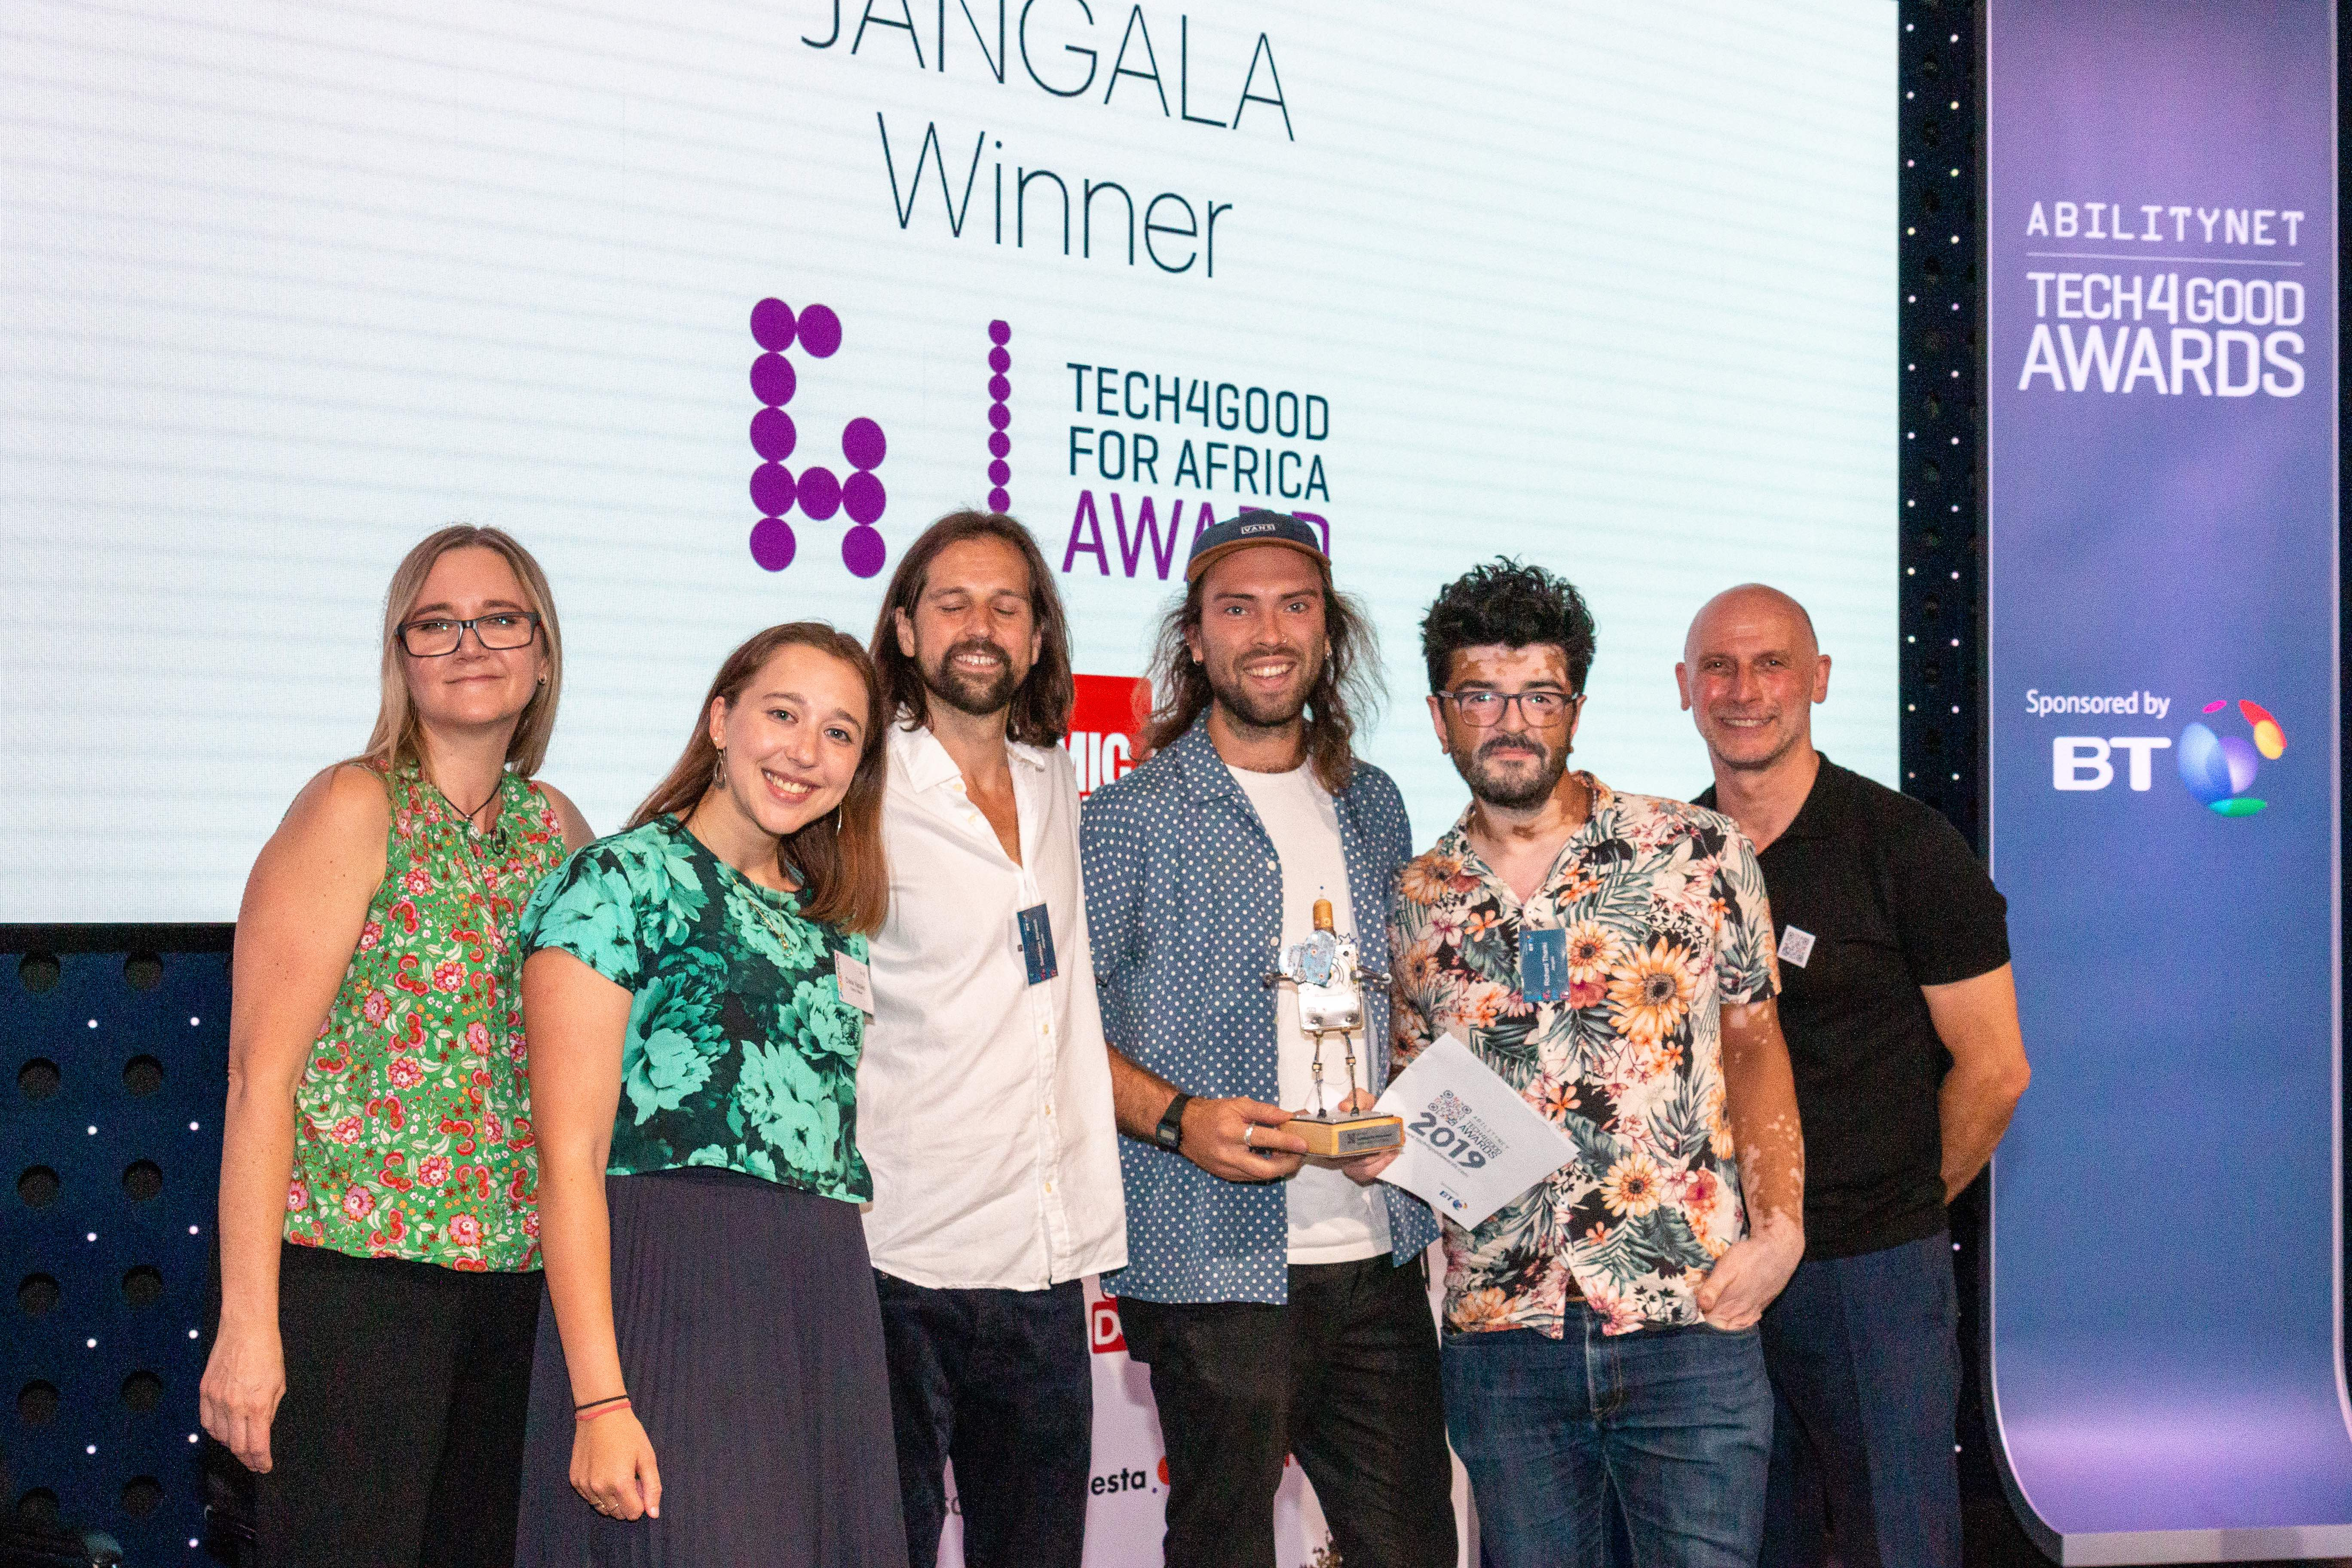 Image shows Jangala receiving its Tech4Good Award at the 2019 ceremony